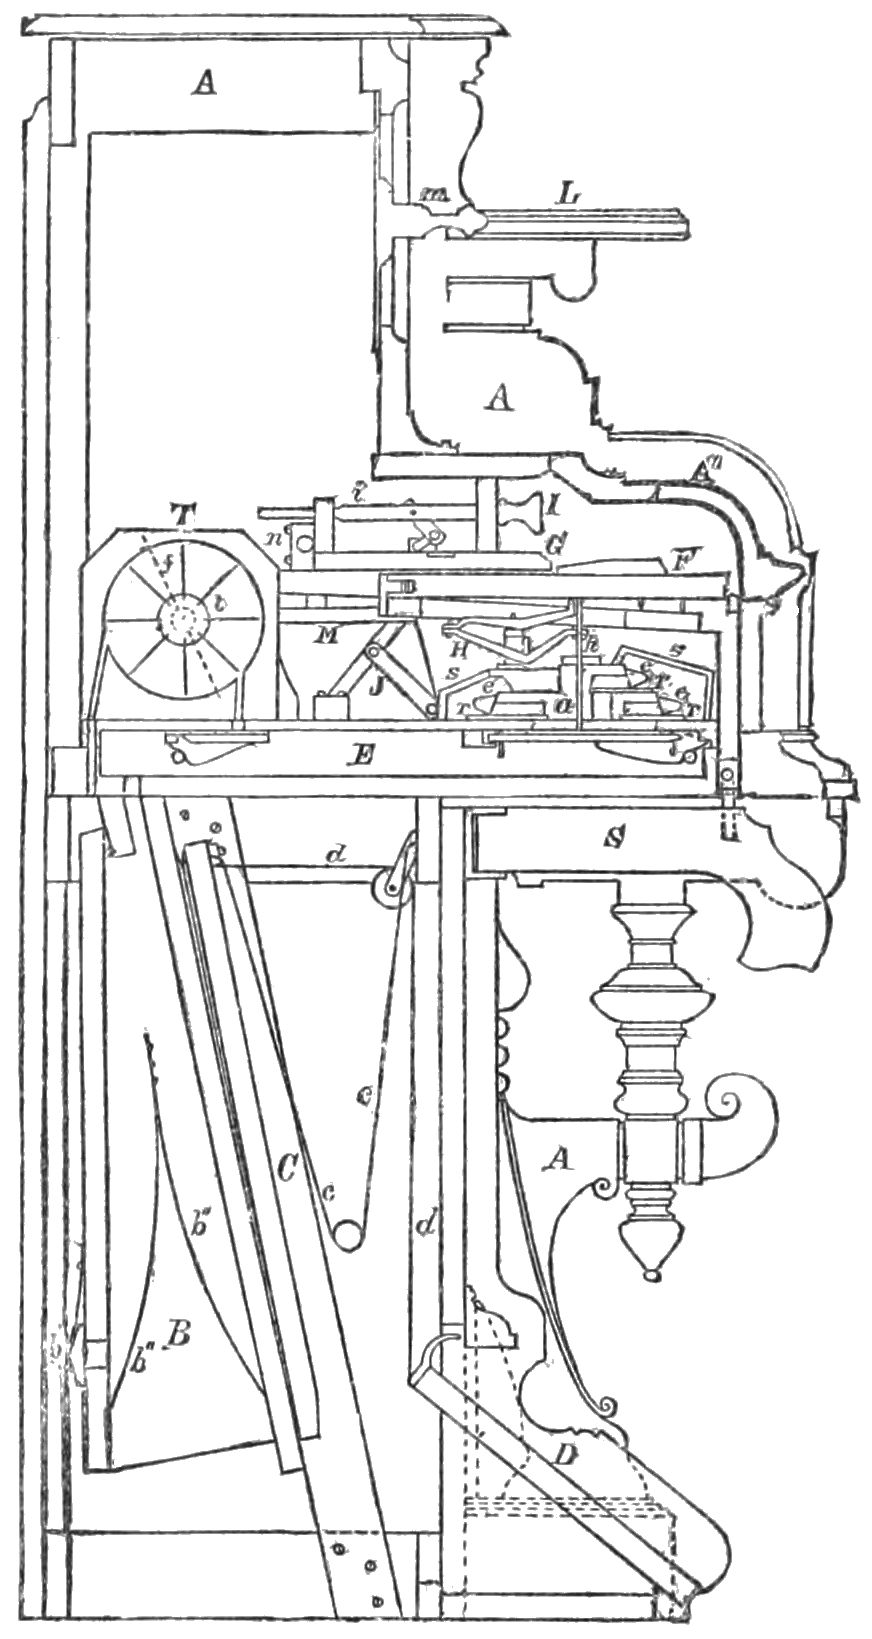 PSM V40 D661 View of the interior of an estey system parlor organ.jpg